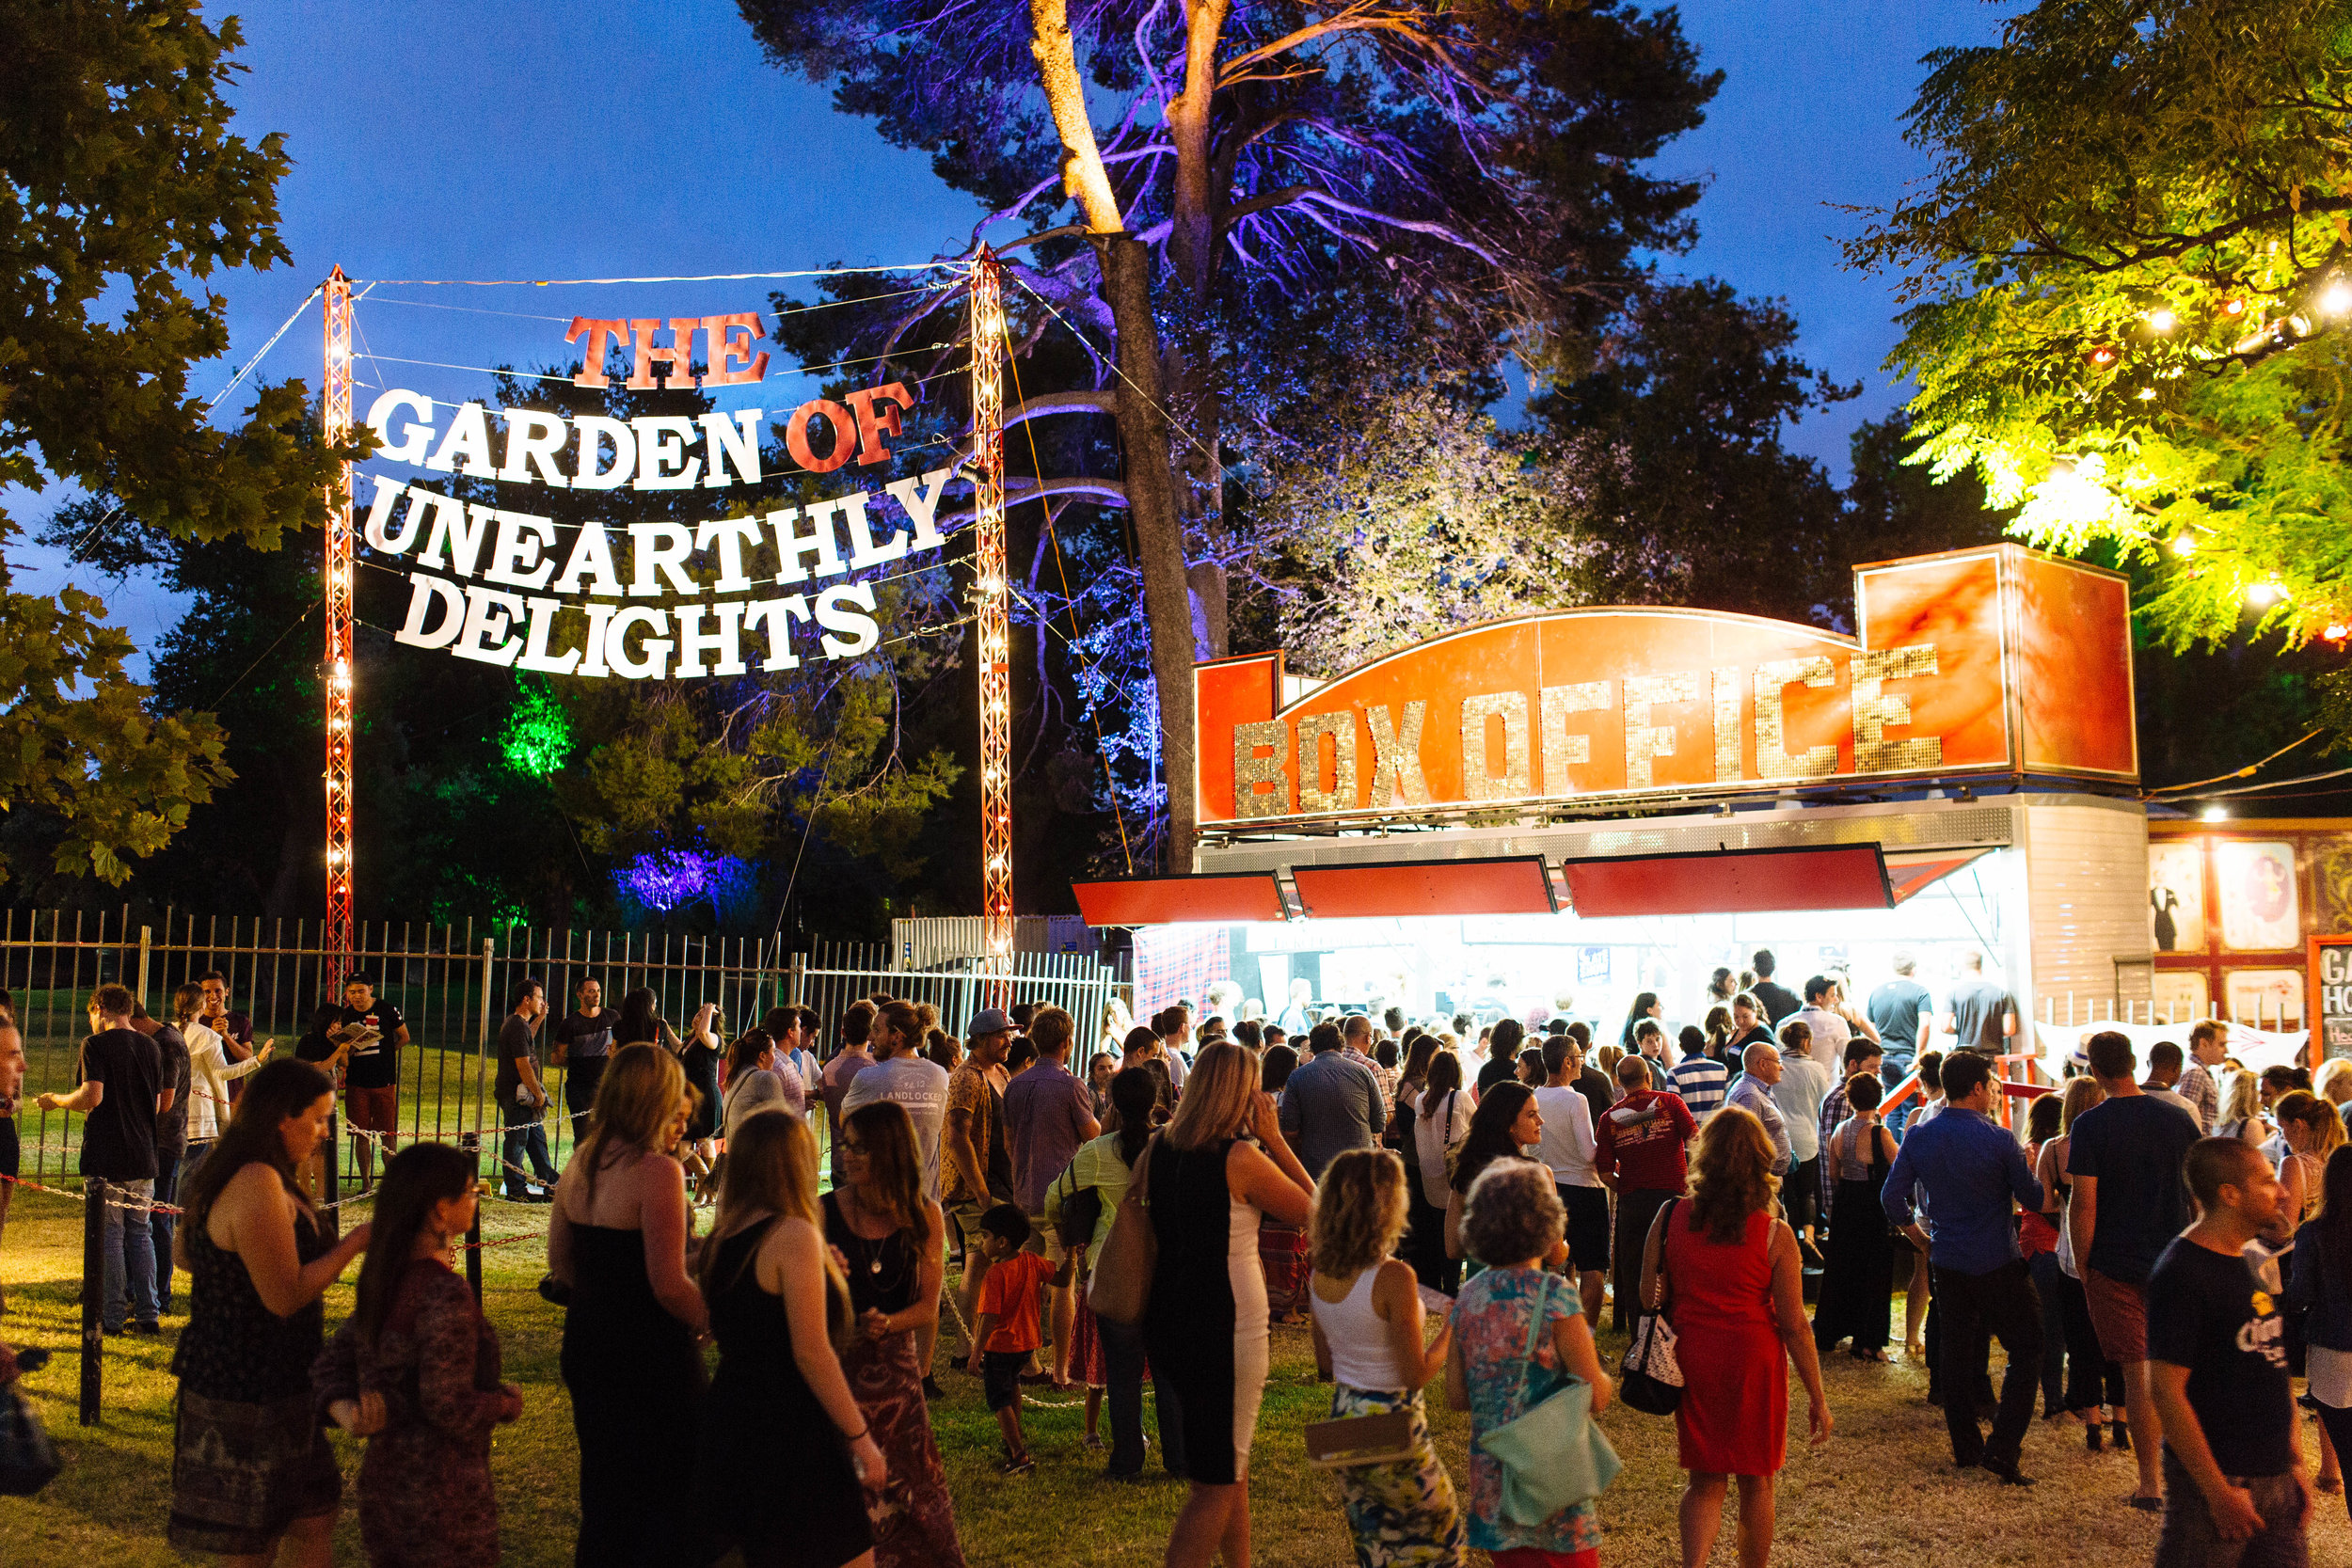 Photo via the Garden of Unearthly Delights, snapped by Andre Castellucci